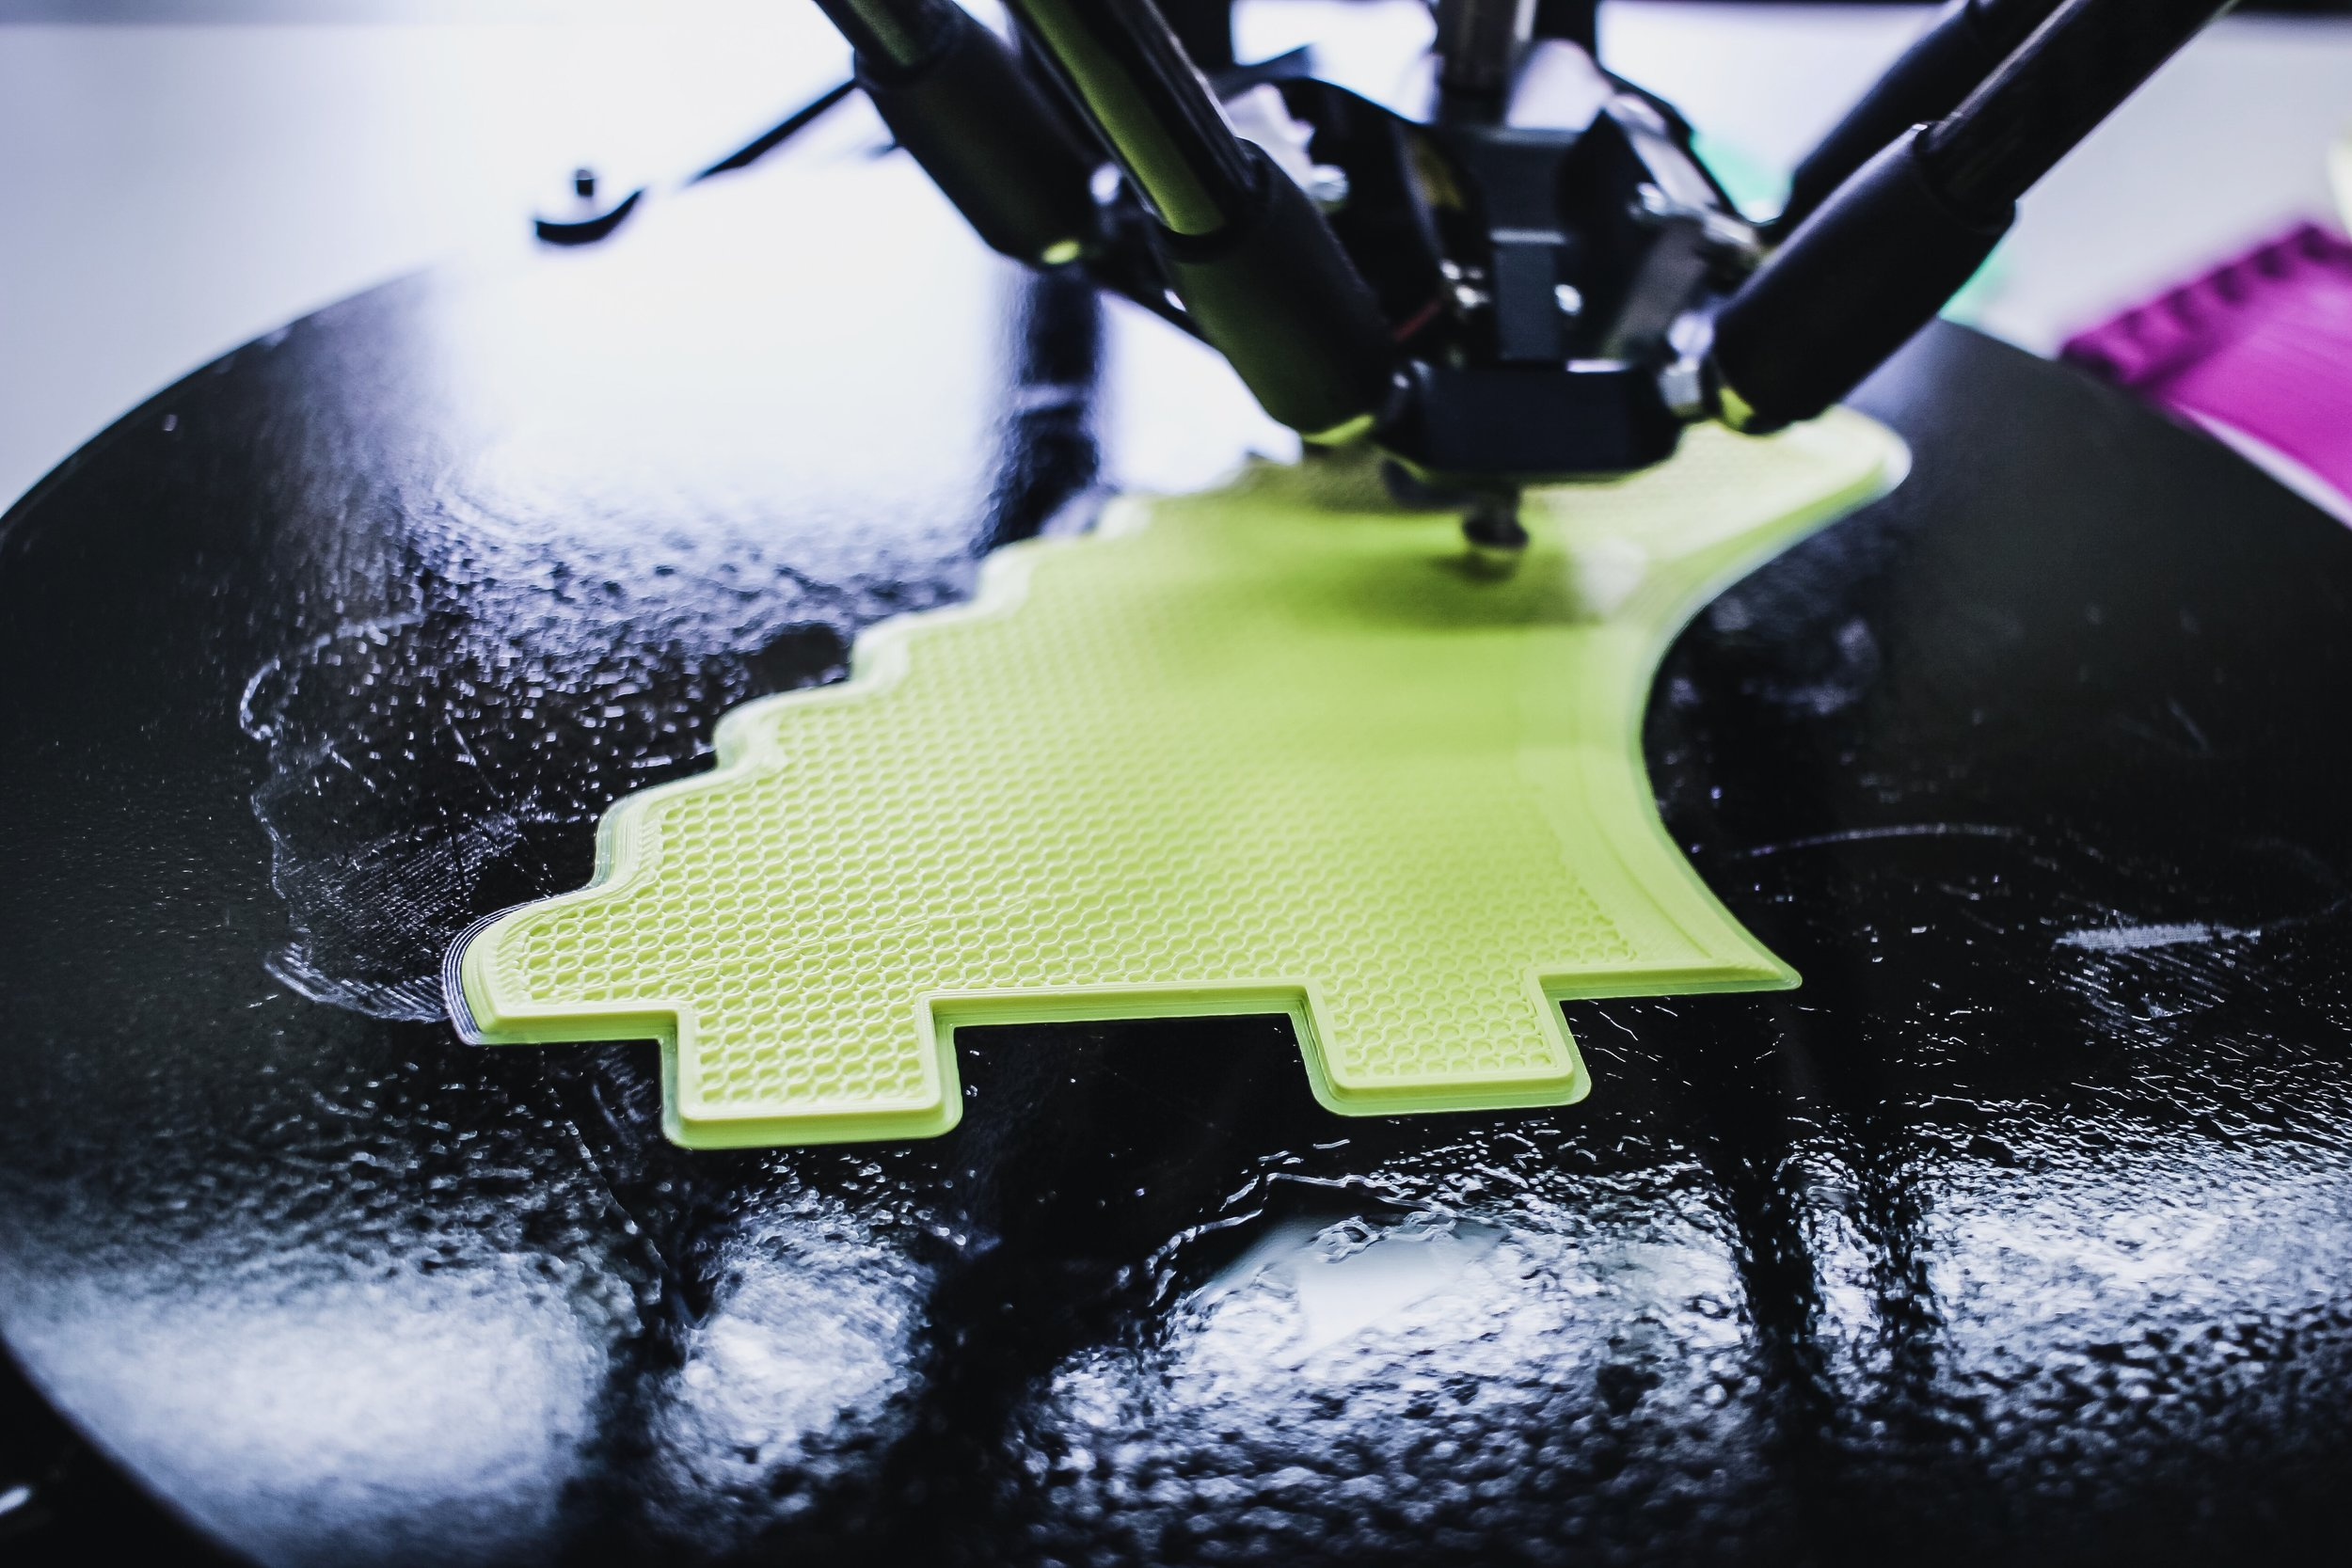 What are the opportunities for 3D printing in Africa?